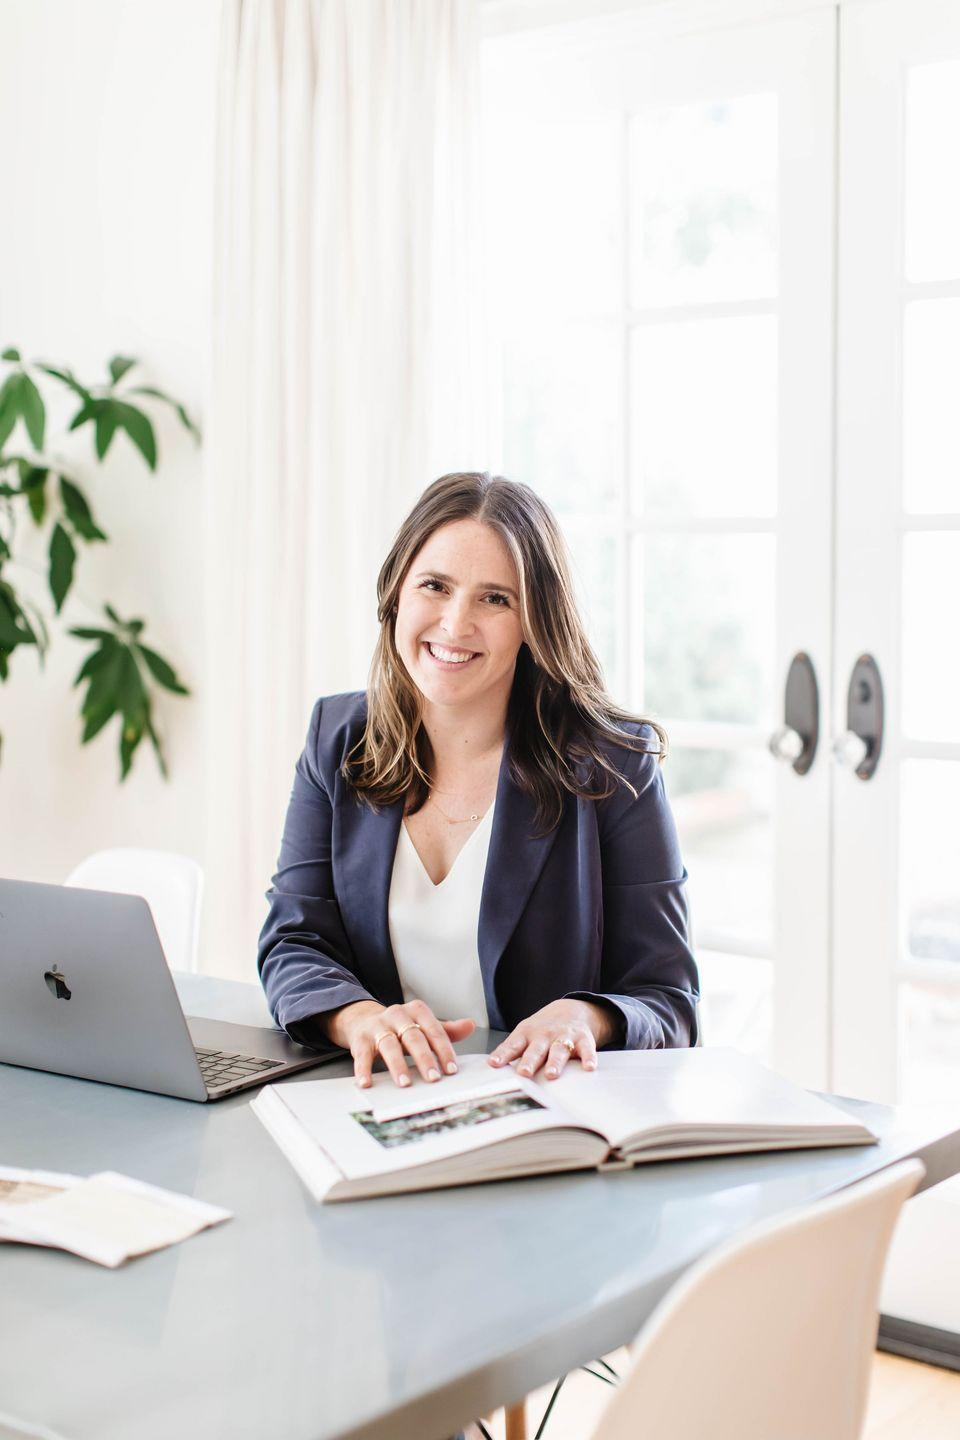 """<p>Everhem founder Haley Weidenbaum says she has a soft spot for two Etsy storefronts: <a href=""""https://www.etsy.com/shop/MullanLighting?ref=simple-shop-header-name&listing_id=228266001"""" rel=""""nofollow noopener"""" target=""""_blank"""" data-ylk=""""slk:Mullan Lighting"""" class=""""link rapid-noclick-resp"""">Mullan Lighting</a> out of Ireland, and <a href=""""https://www.etsy.com/shop/beauchamping?ref=yr_purchases"""" rel=""""nofollow noopener"""" target=""""_blank"""" data-ylk=""""slk:Beauchamping"""" class=""""link rapid-noclick-resp"""">Beauchamping</a> out of Southern California. <br><br>""""Mullan was a very unique find because their lights are one of a kind, very well made, and they offer a variety of styles,"""" she says. """"The prices from this Etsy shop are unbeatable and even though everything is made in Ireland, lead times are reasonable.""""</p><p><a href=""""https://www.etsy.com/shop/beauchamping"""" rel=""""nofollow noopener"""" target=""""_blank"""" data-ylk=""""slk:Beauchamping"""" class=""""link rapid-noclick-resp"""">Beauchamping</a> is a collection of original artwork from Gregory Beauchamp and is a popular spot for finding affordable, thought-provoking prints.</p><p>""""I love that these art prints aren't cliche but instead, they are clever and interesting,"""" Weidenbaum says. """"I also love that their array of prints are appropriate for any type of room in your home. I personally have used these prints in a nursery/playroom, a home office, and a living room.""""</p>"""